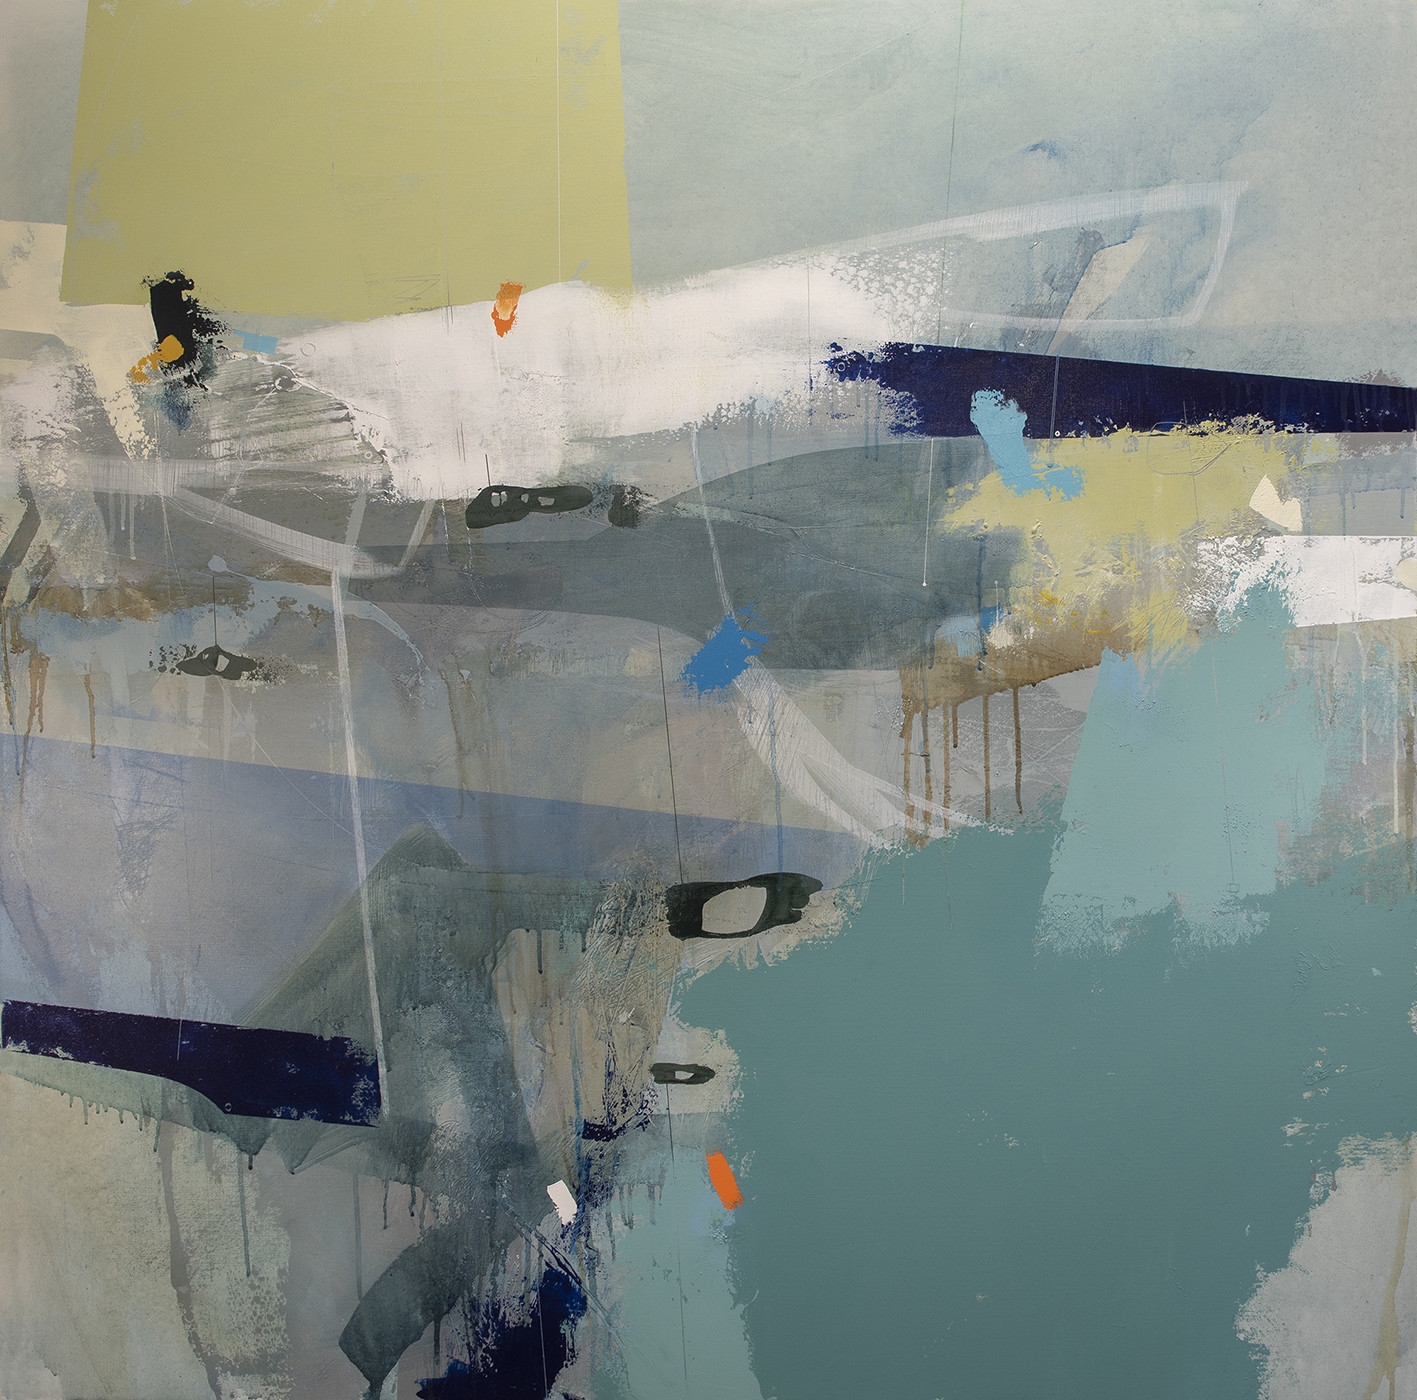 """<span class=""""link fancybox-details-link""""><a href=""""/artists/77-andrew-bird/works/6201-andrew-bird-overfall-2019/"""">View Detail Page</a></span><div class=""""artist""""><strong>Andrew Bird</strong></div> <div class=""""title""""><em>Overfall</em>, 2019</div> <div class=""""signed_and_dated"""">signed, titled and dated on reverse</div> <div class=""""medium"""">acrylic on canvas</div> <div class=""""dimensions"""">h 122 x w 122 cm<br /> 48 1/8 x 48 1/8 in</div><div class=""""price"""">£4,950.00</div><div class=""""copyright_line"""">Own Art: £ 250 x 10 Months, 0% APR + £2,450</div>"""